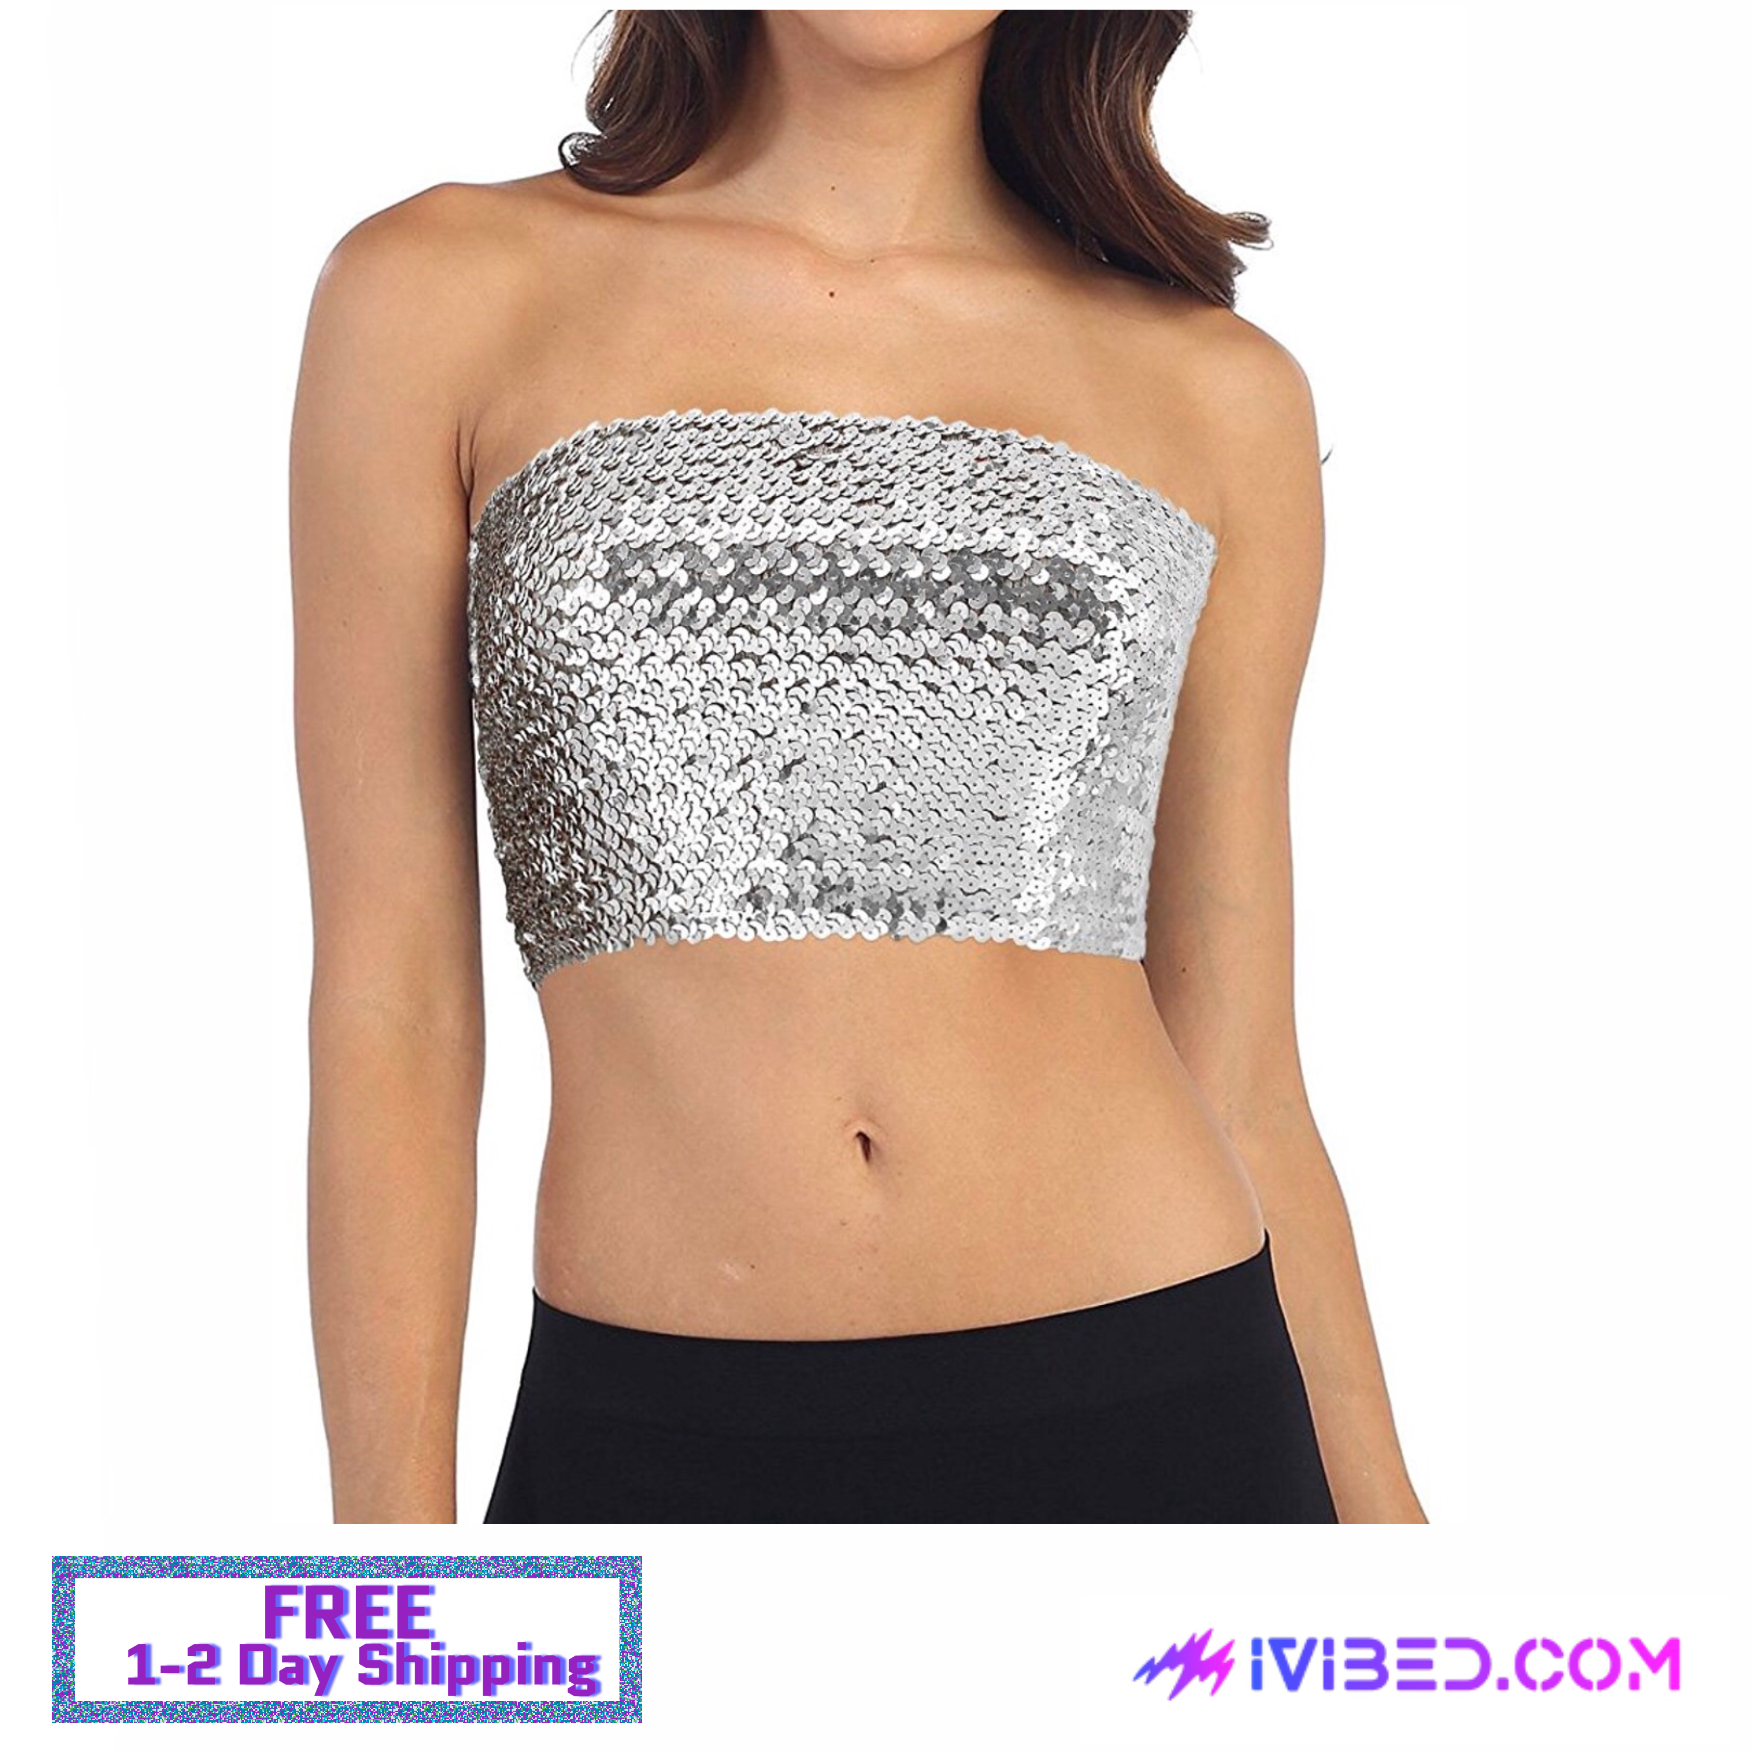 a4798254fc0 Rave Tank Top Tube Top Girls Silver Sequin Off Shoulder Tube Top ...